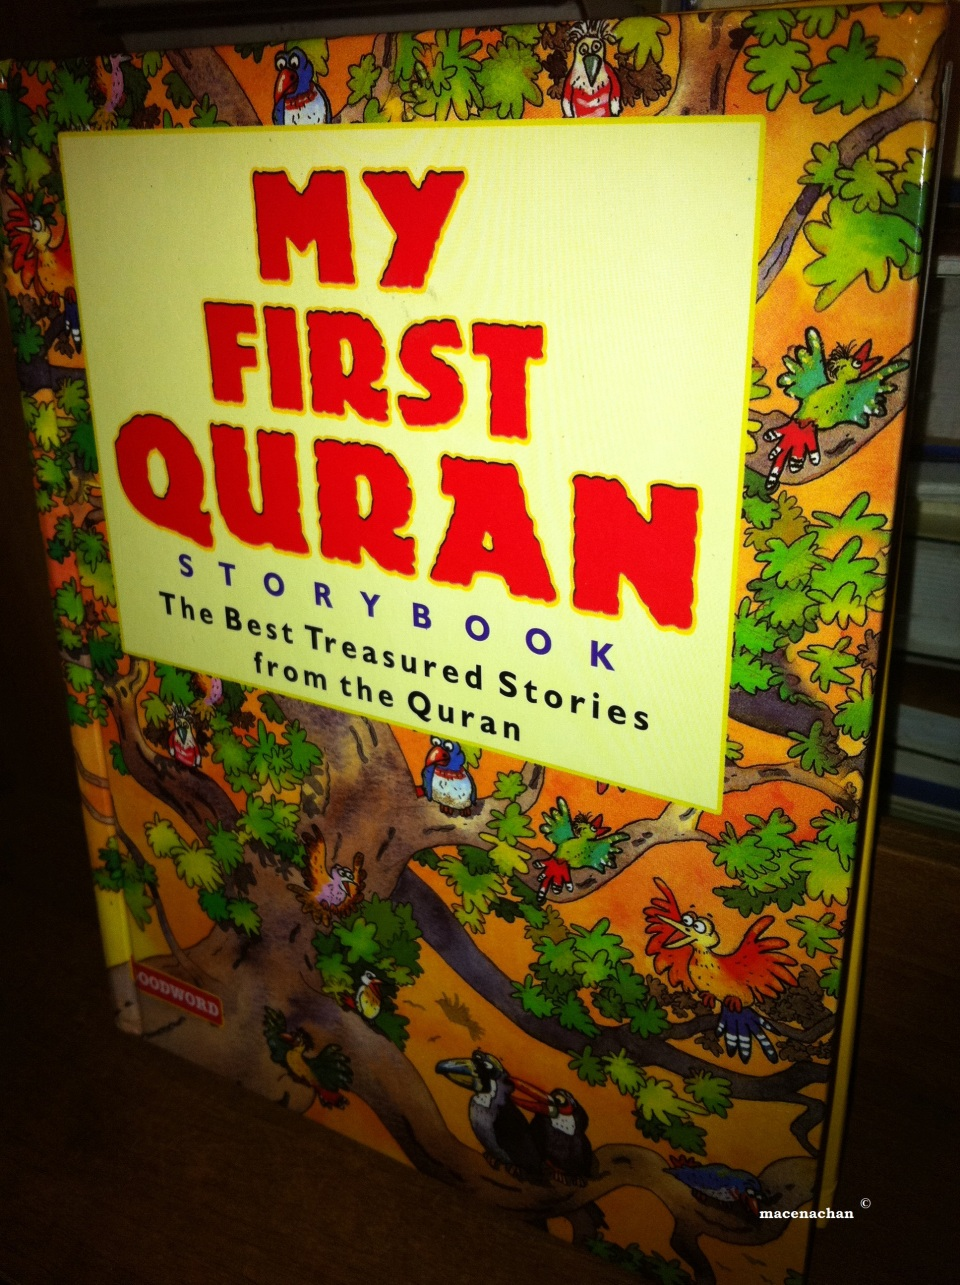 'My First Quran' has 42 stories compiled from the Qur'an with simple language and colourful pictures.